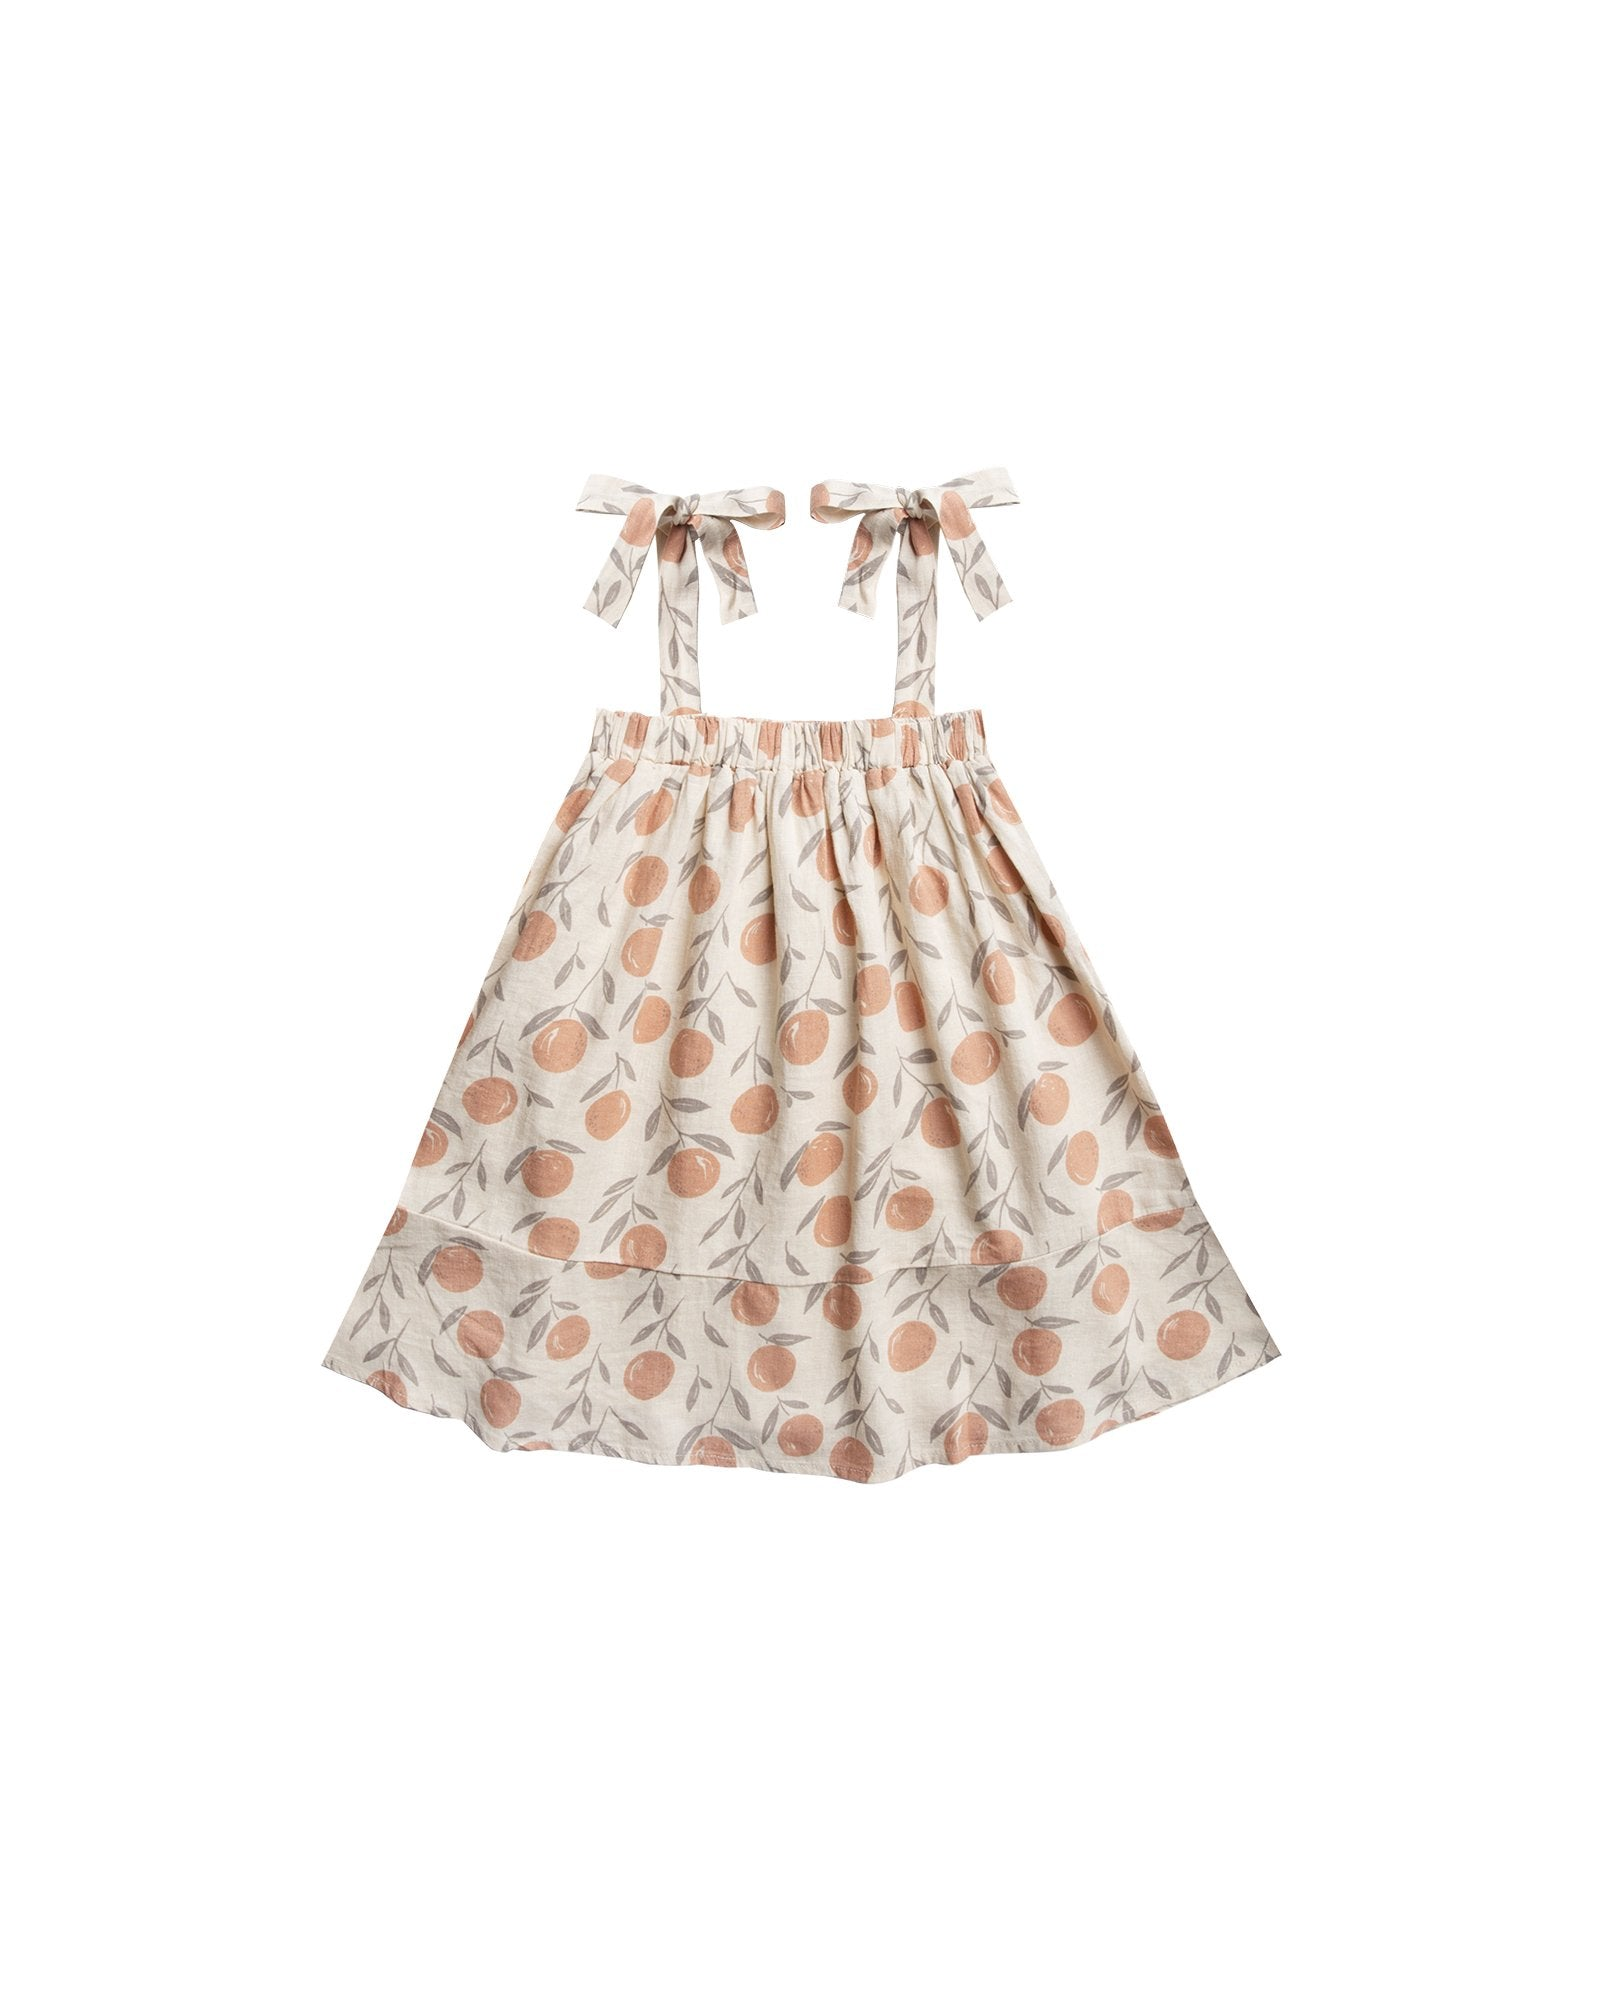 Little rylee + cru girl peaches shoulder tie dress